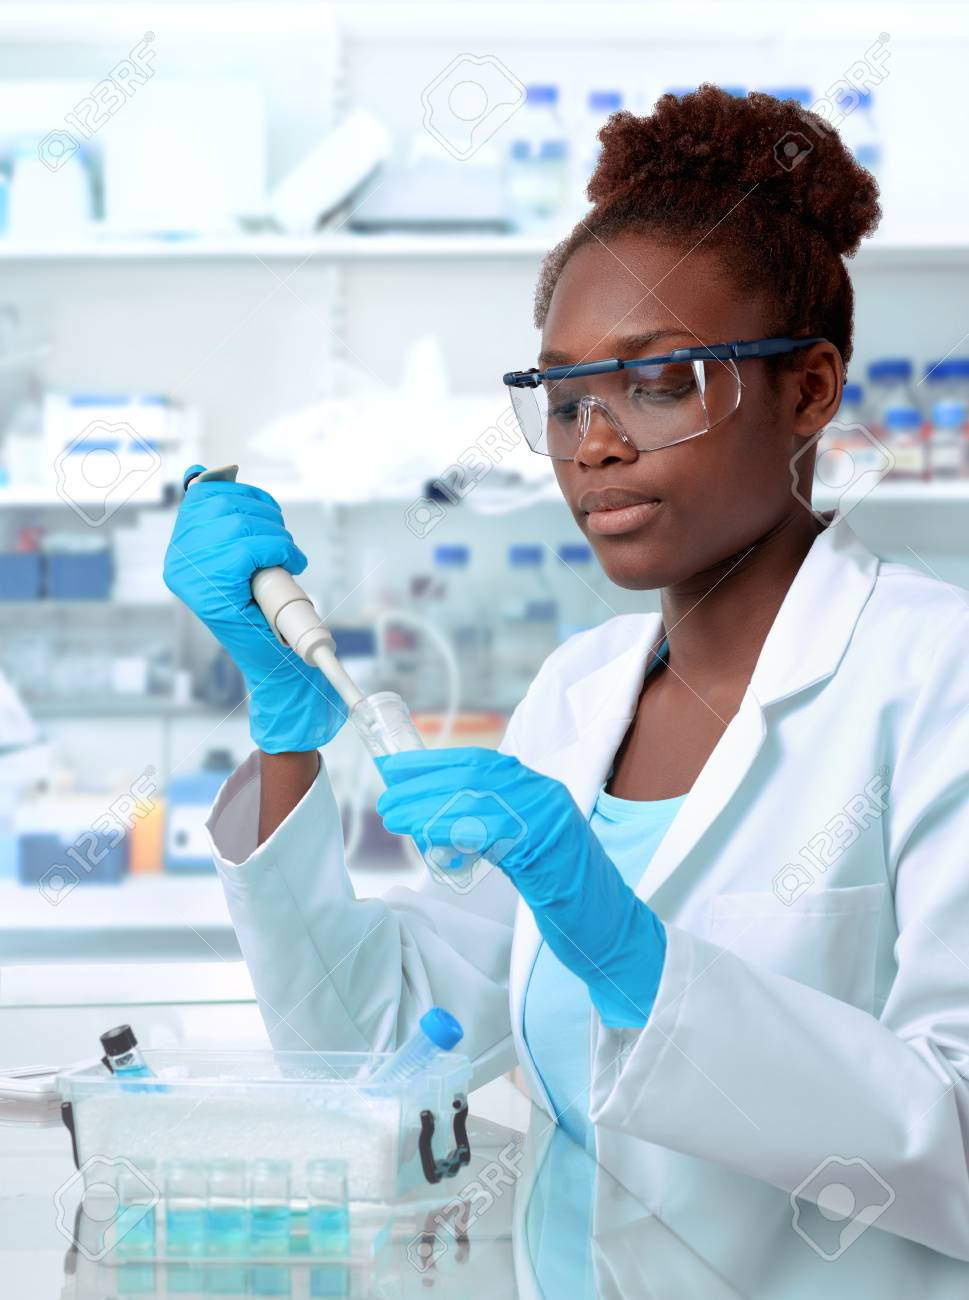 African-american scientist or graduate student in lab coat and protective wear works in modernl laboratory - 92485347